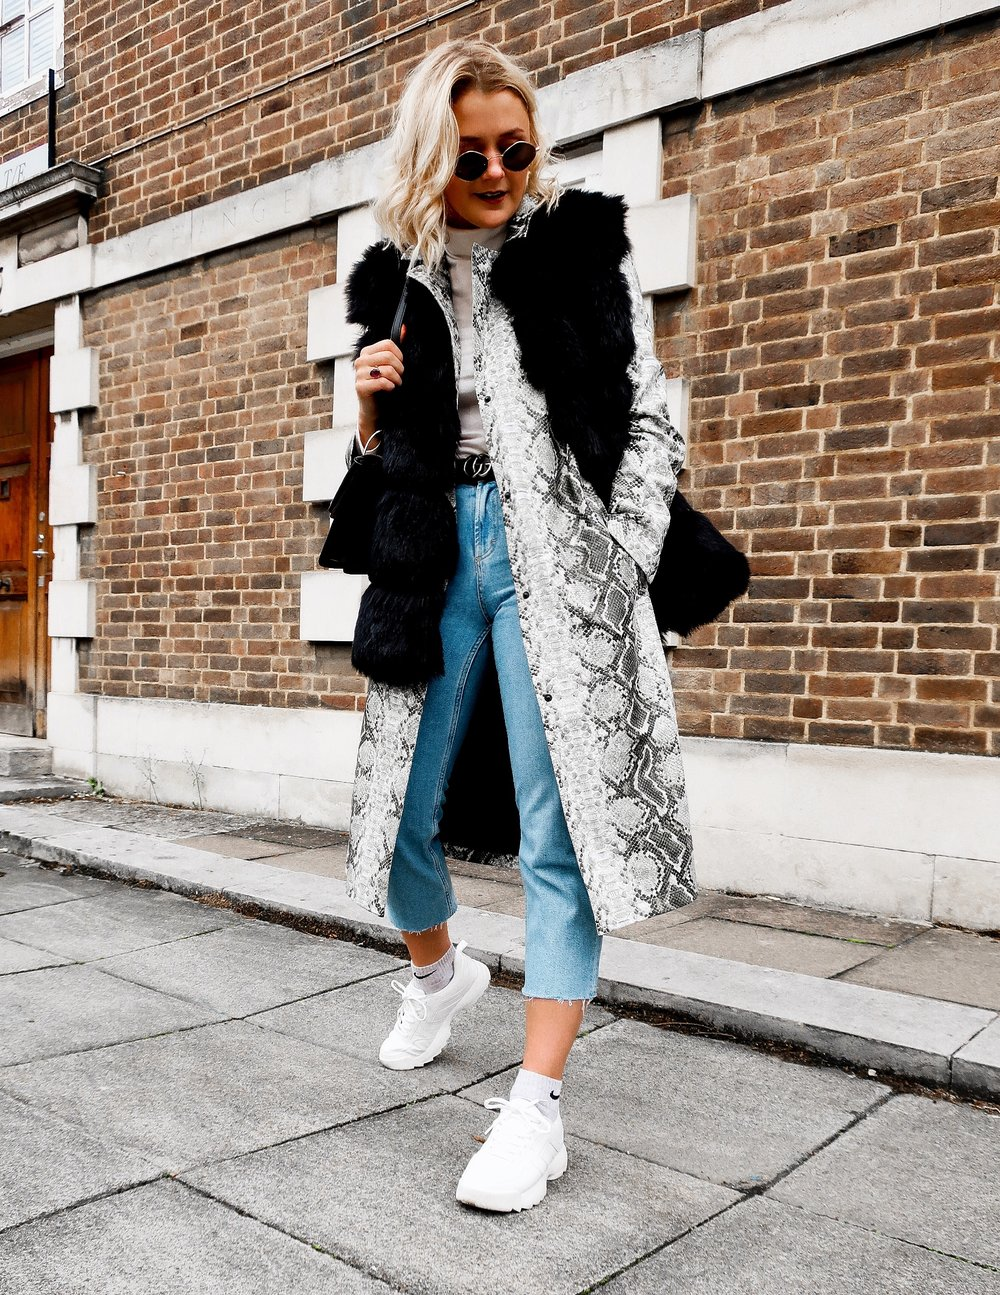 How to layer up in winter